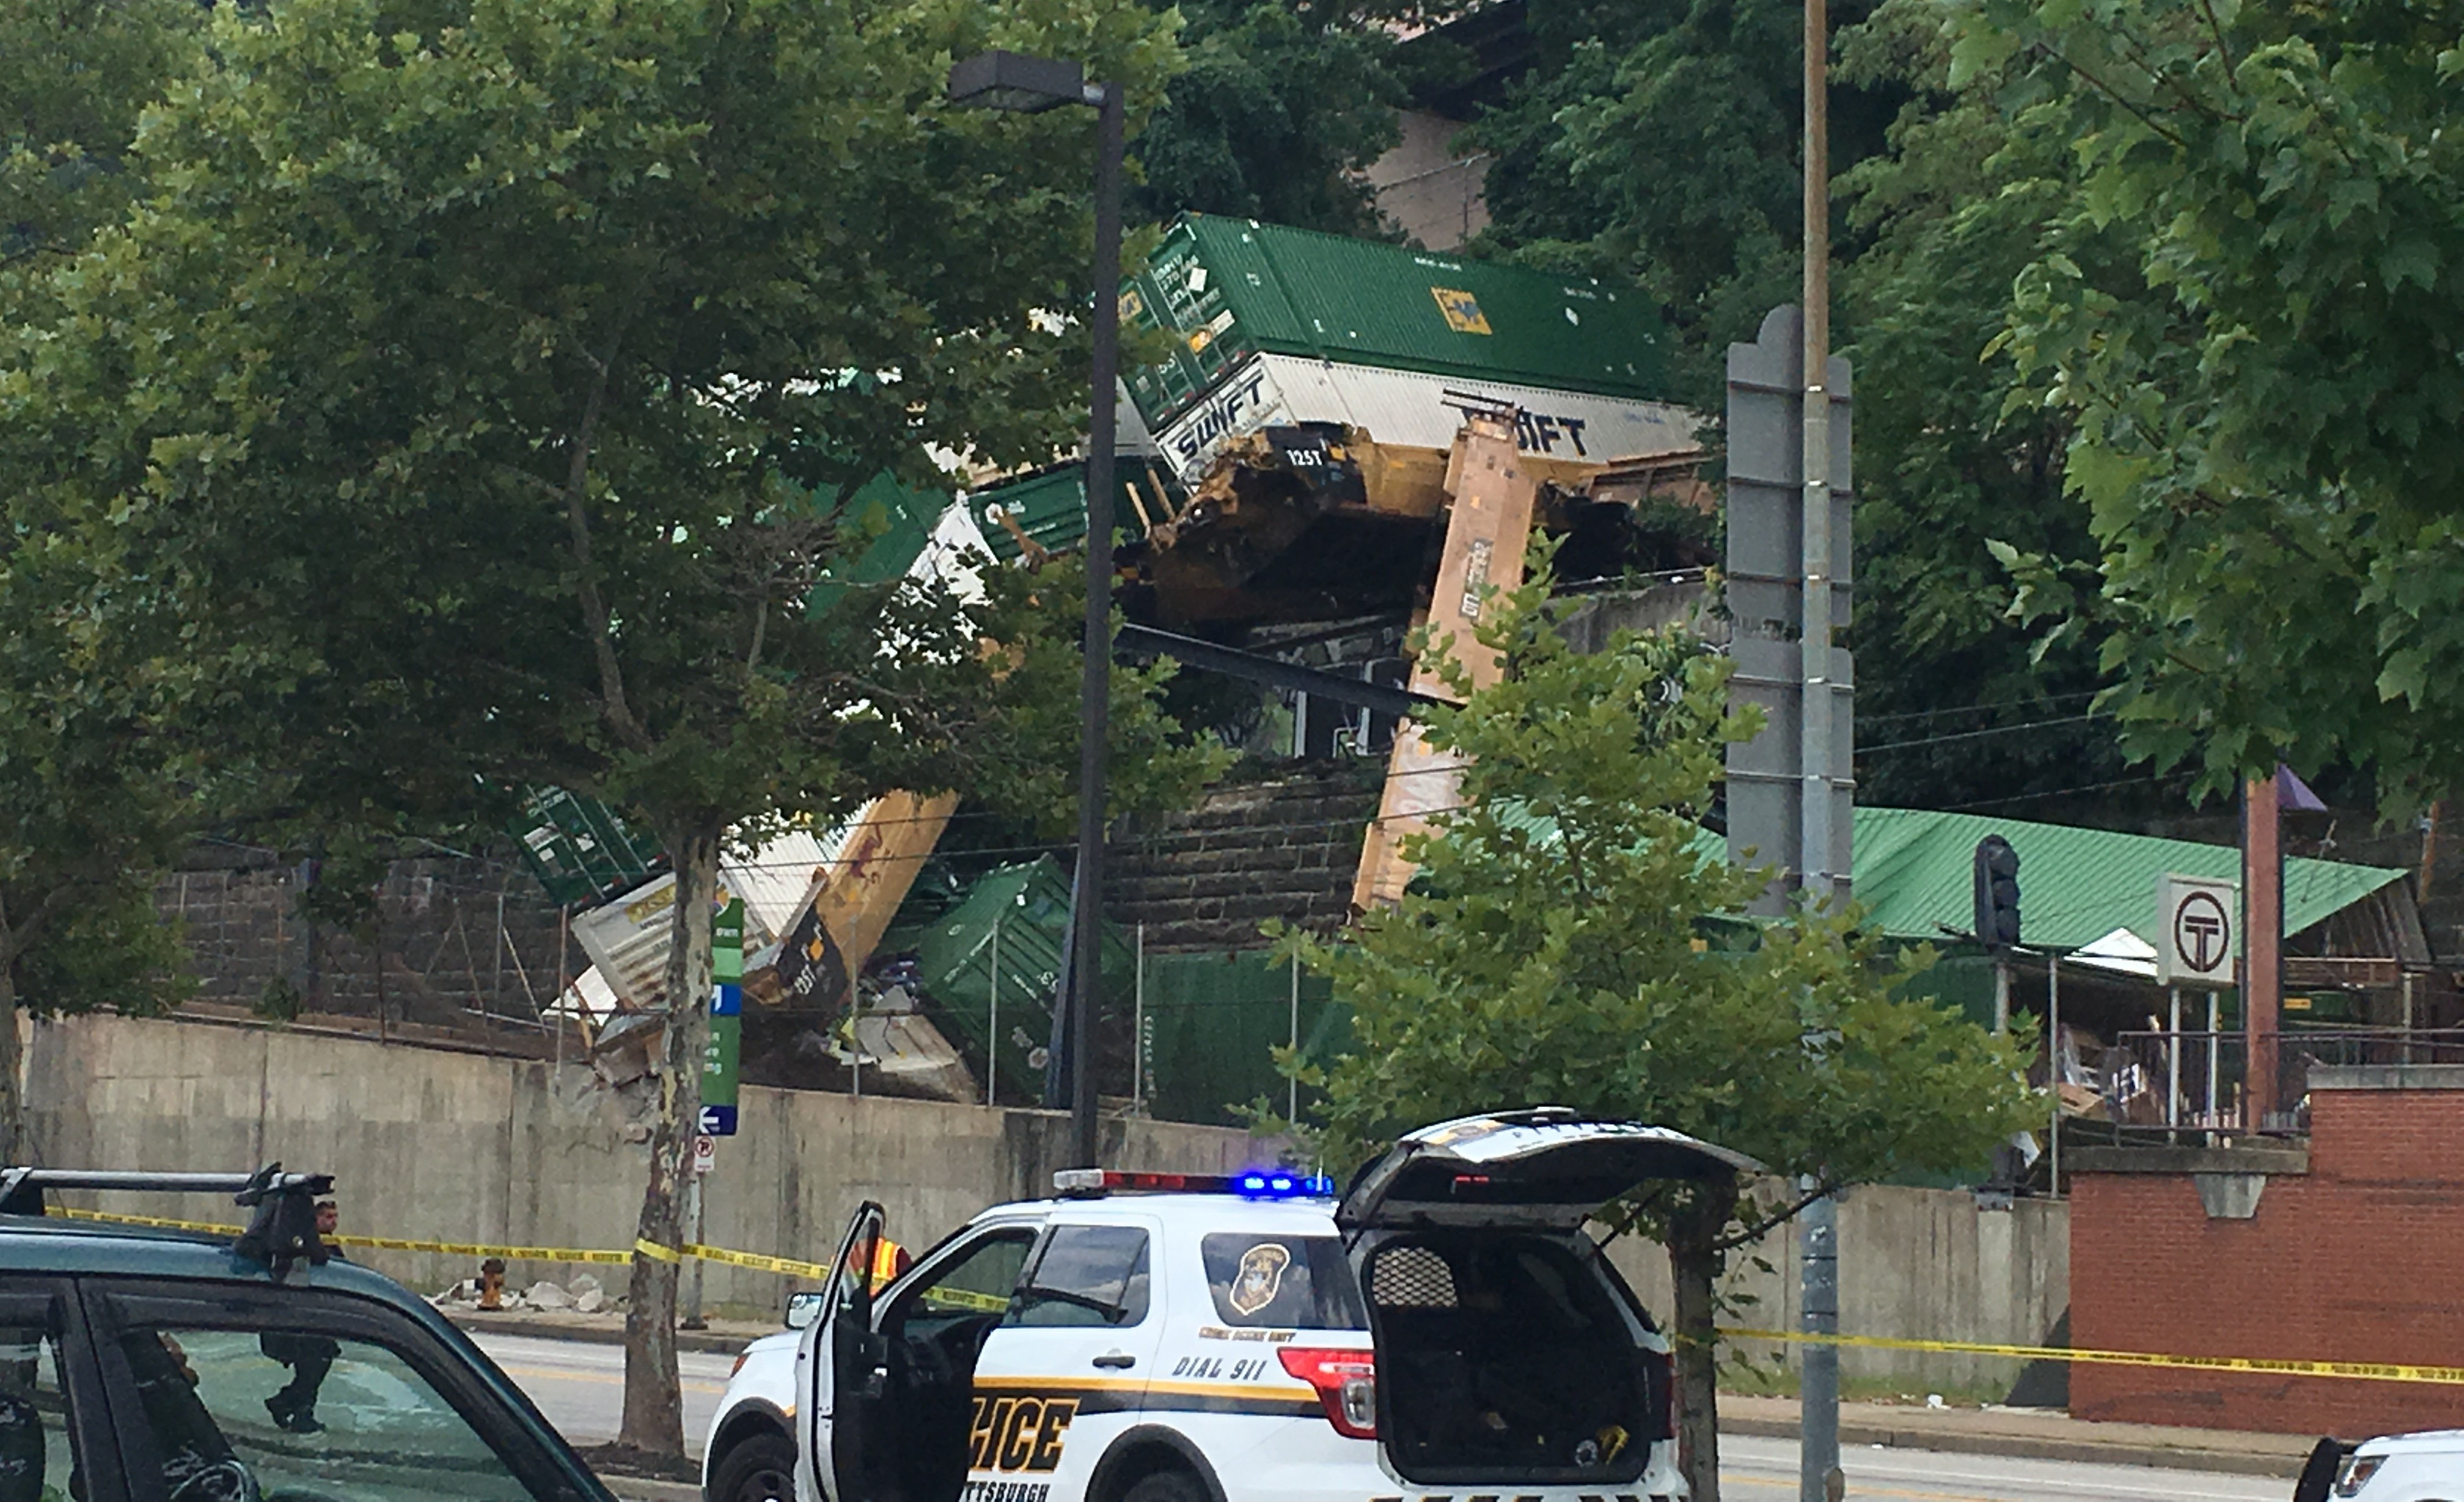 North Side residents concerned a train derailment could ruin